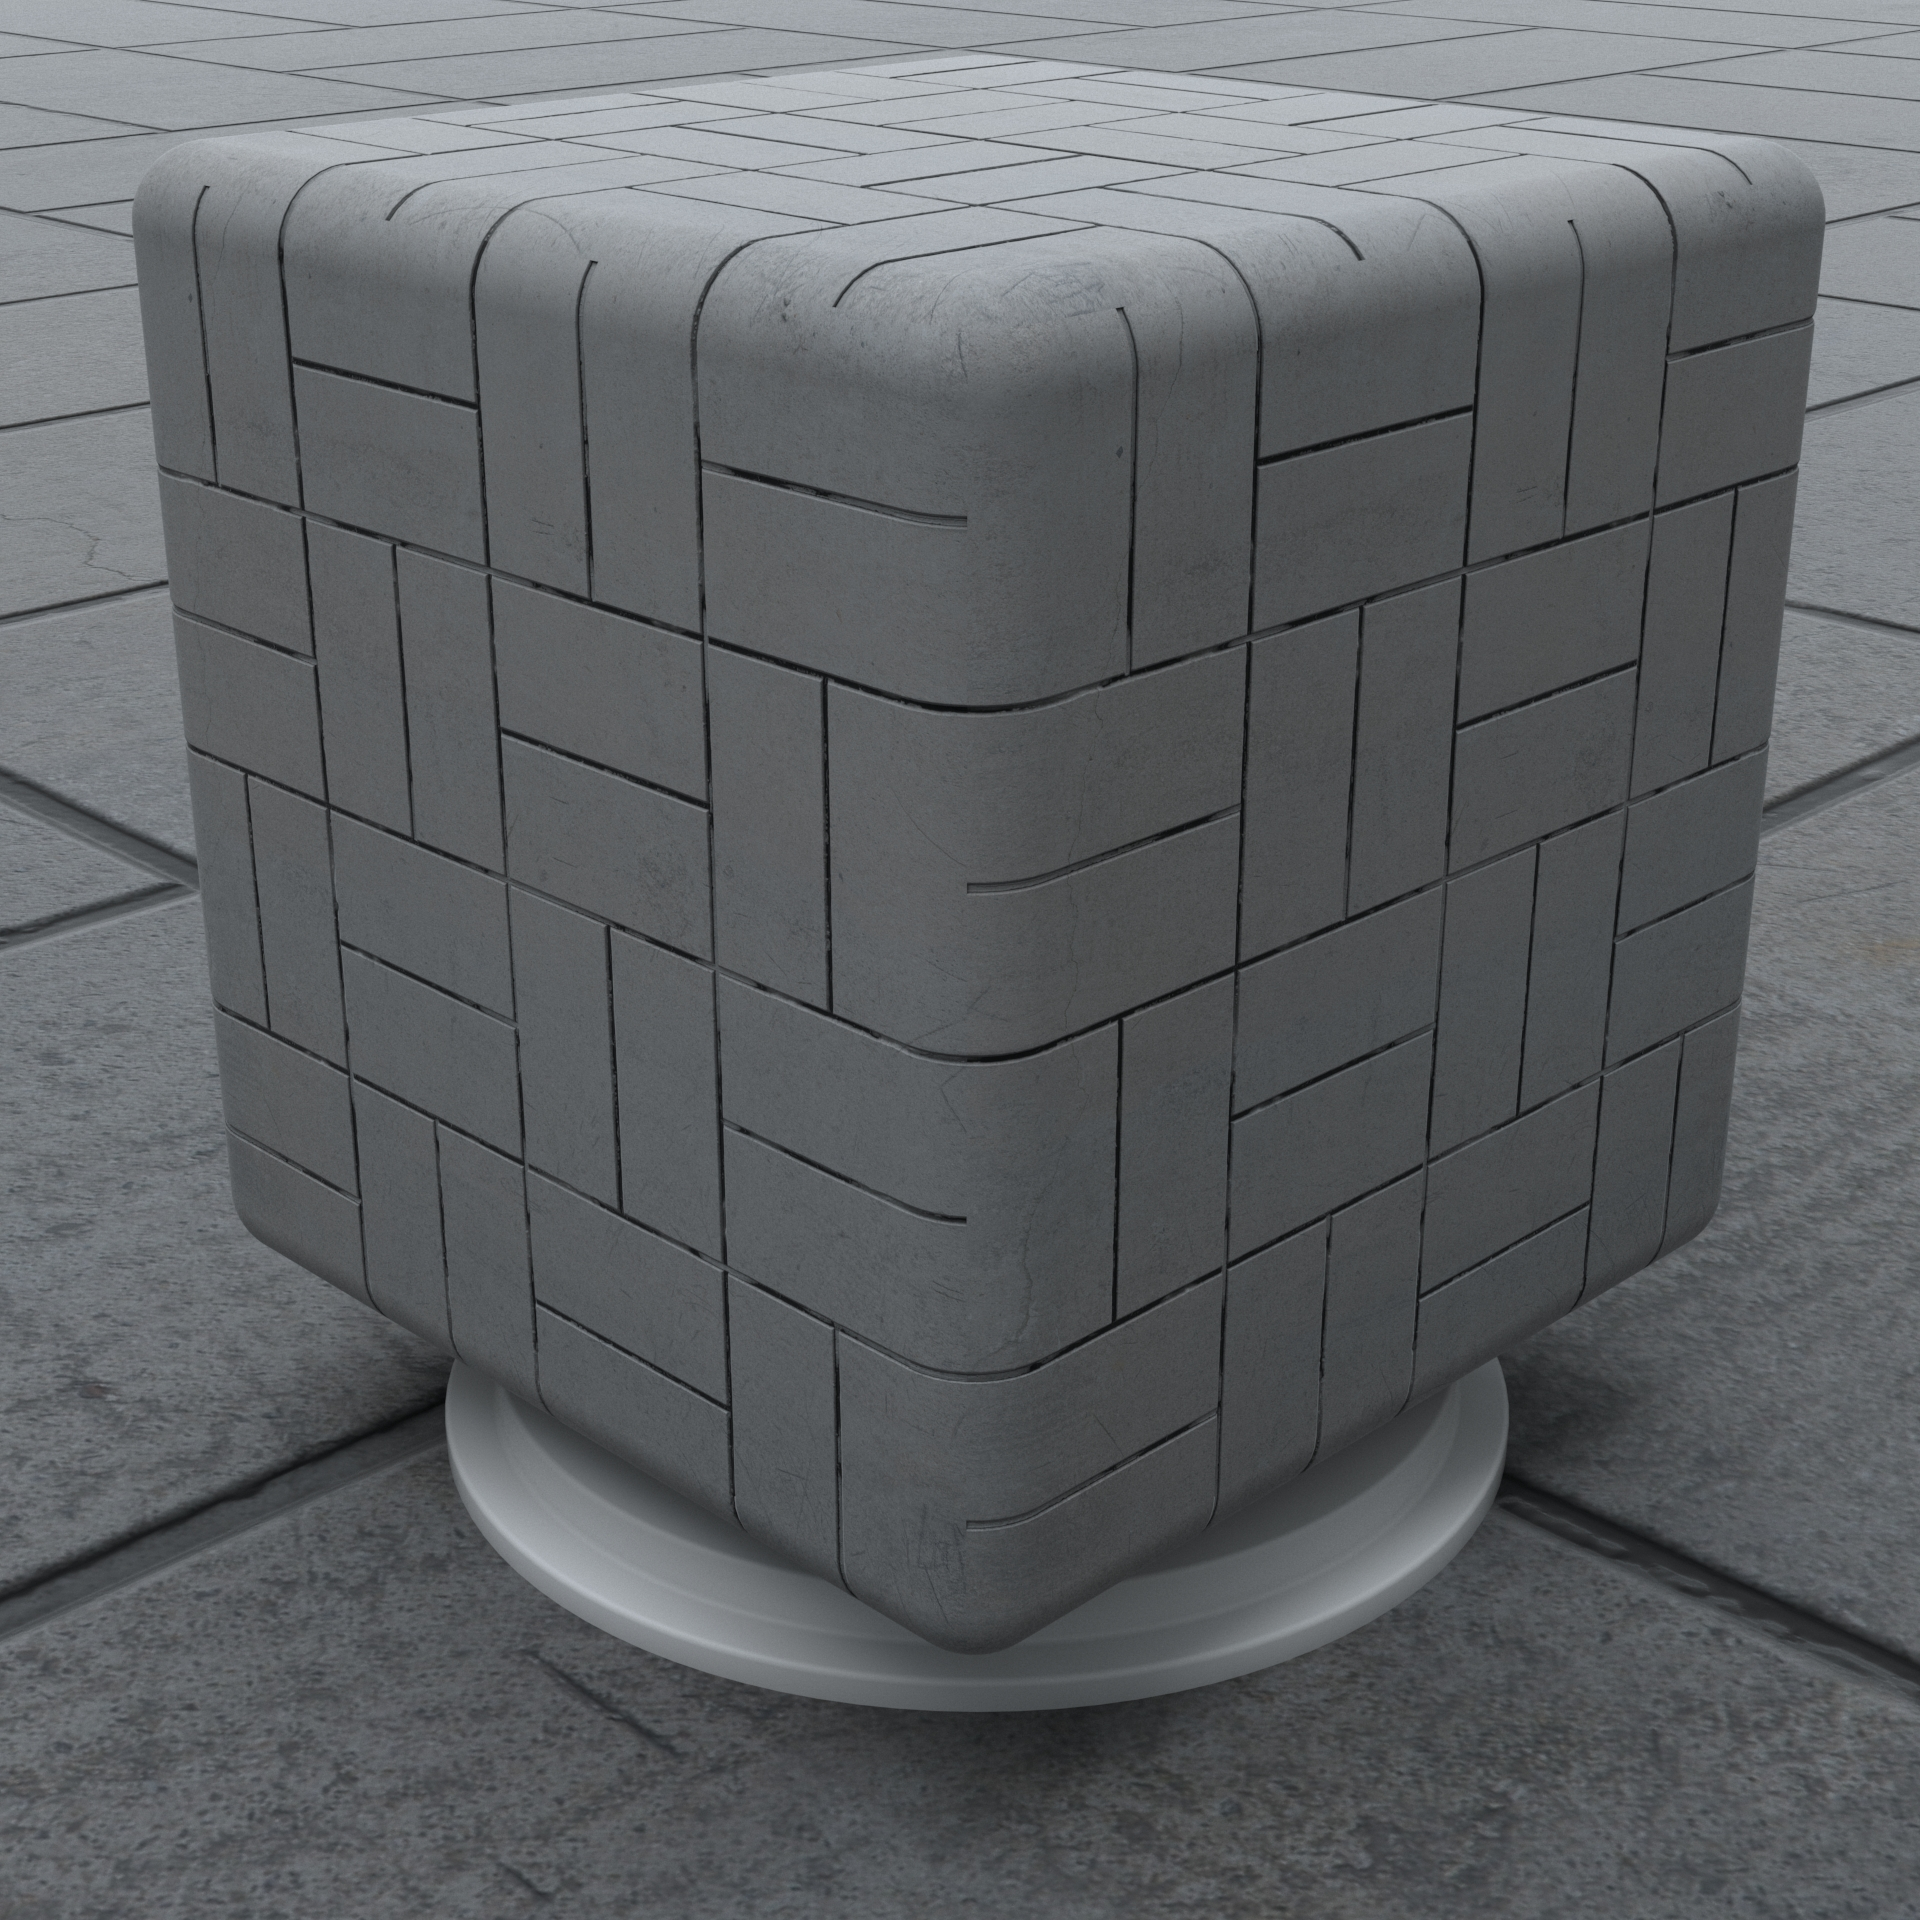 Concrete Tiles Worn AI 02 Preview.jpg